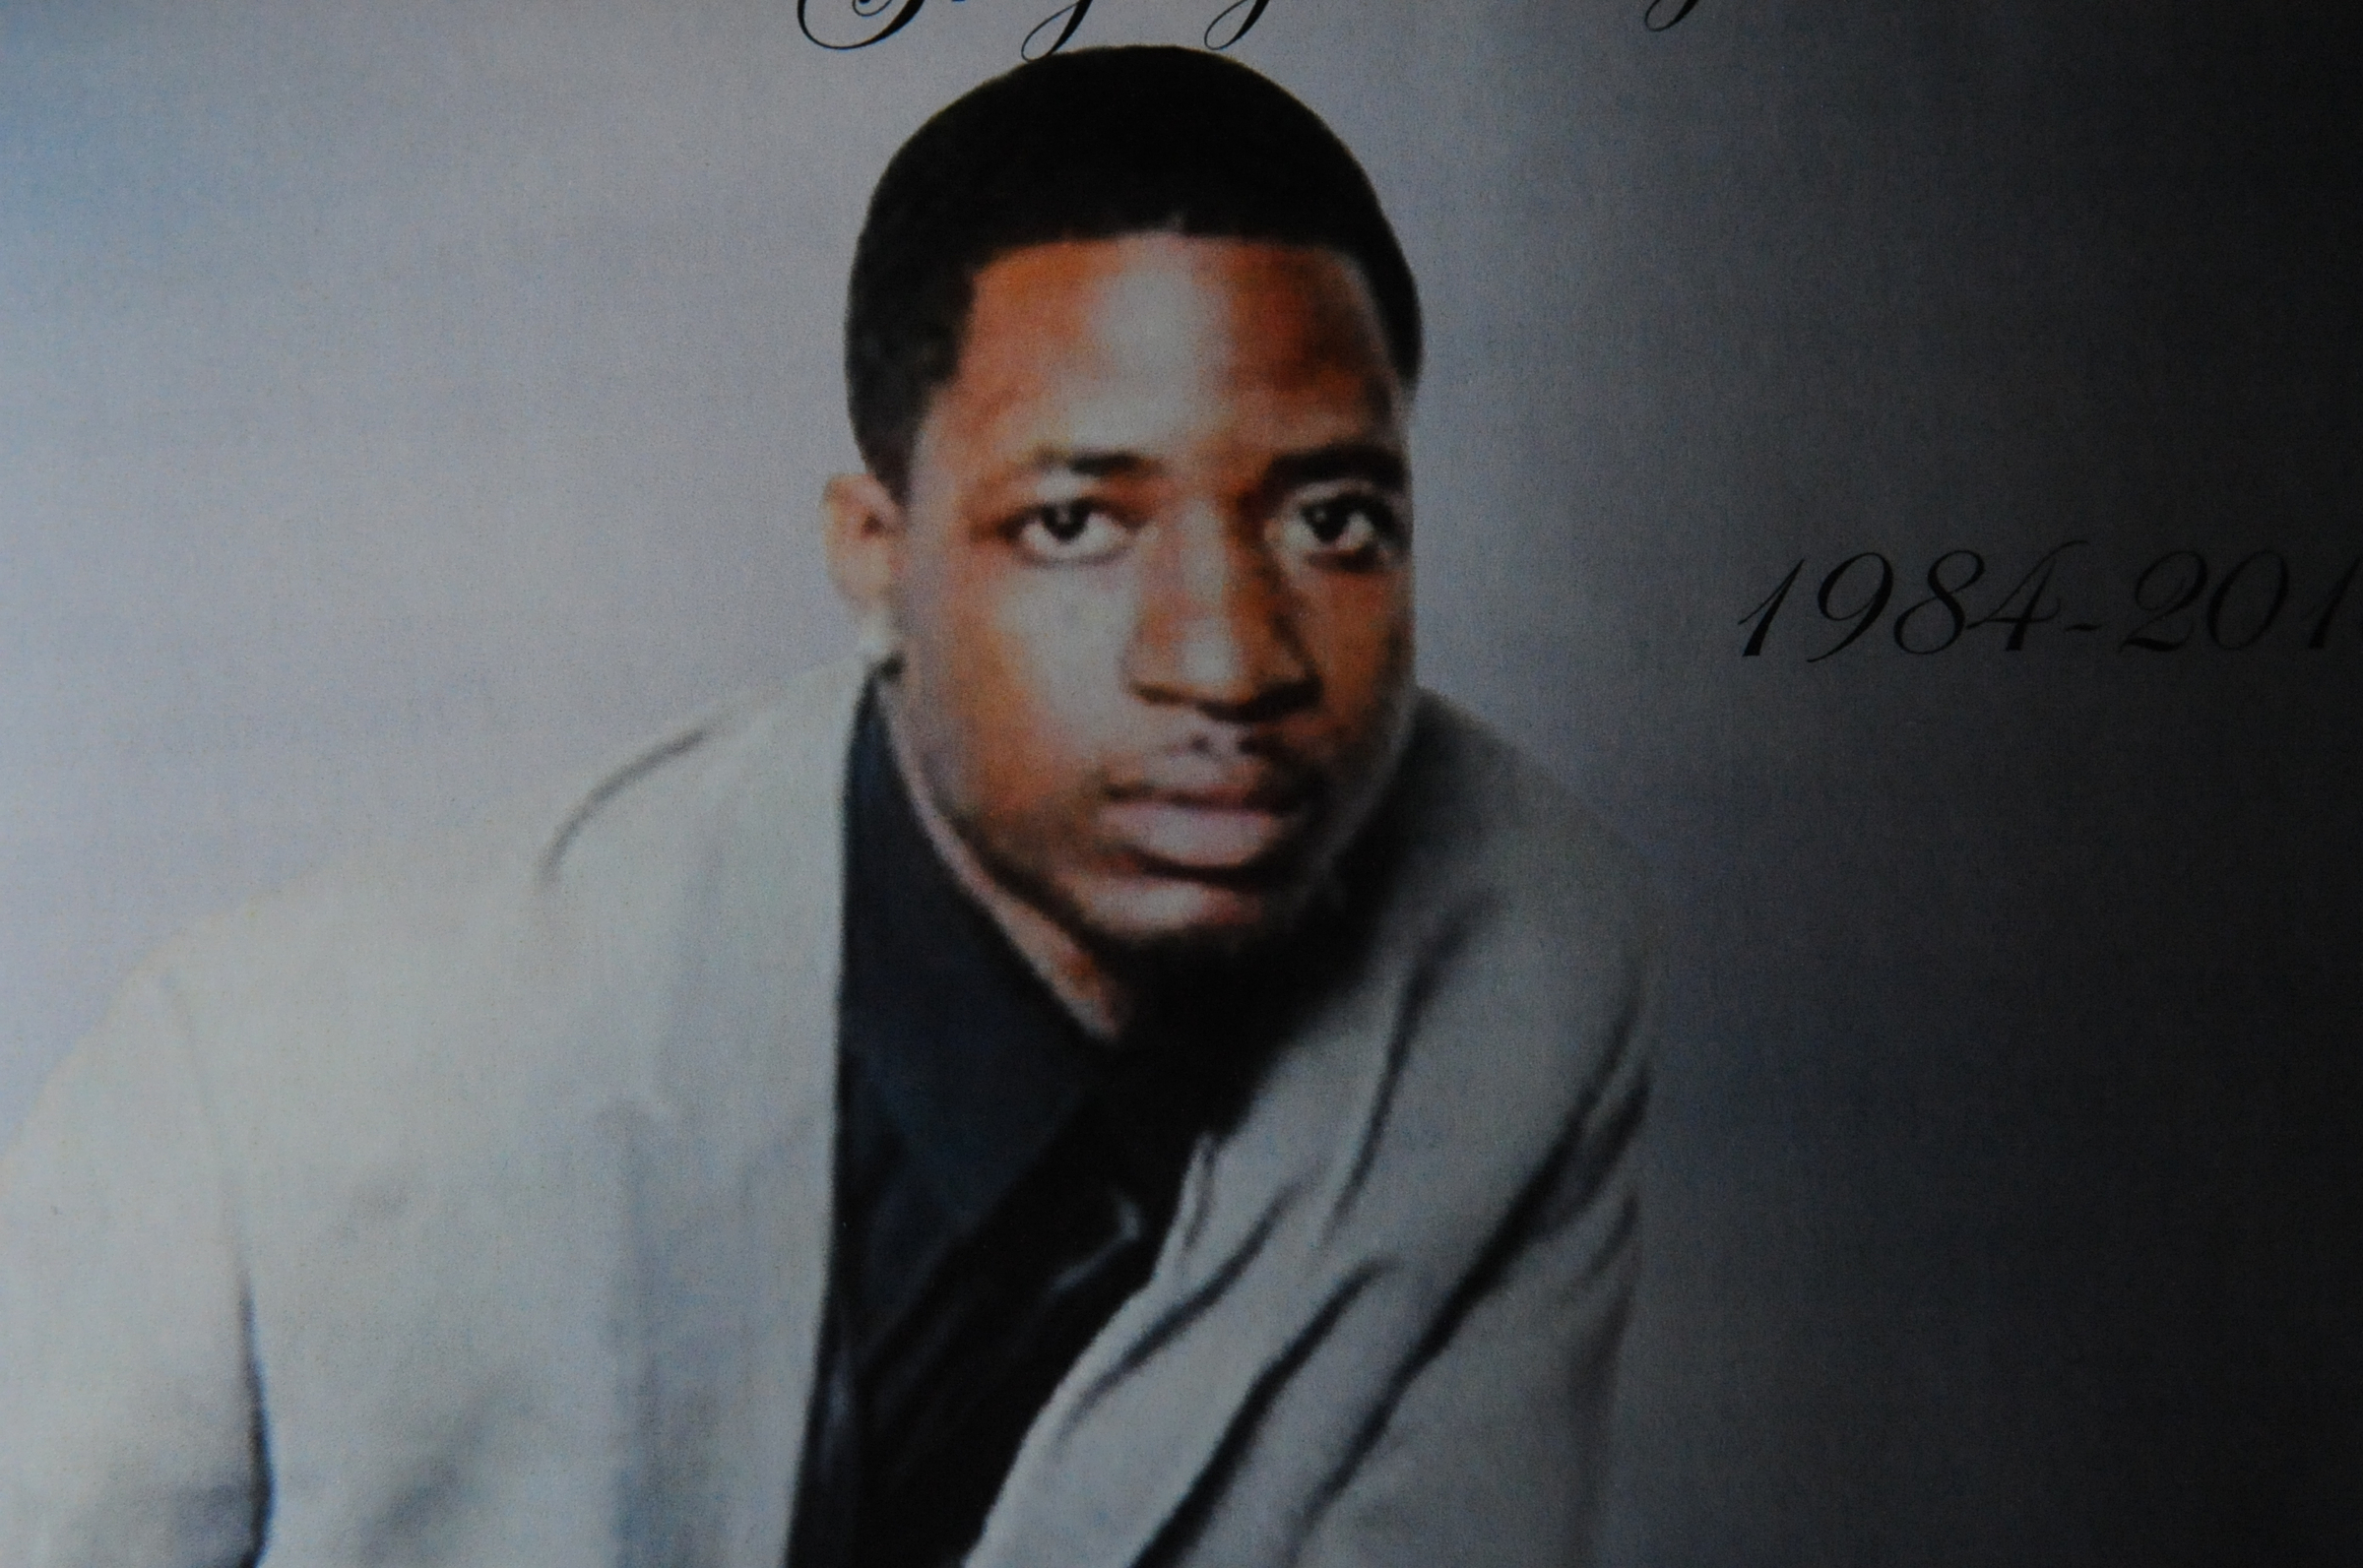 gregory bady victims homicide watch chicago mark every death